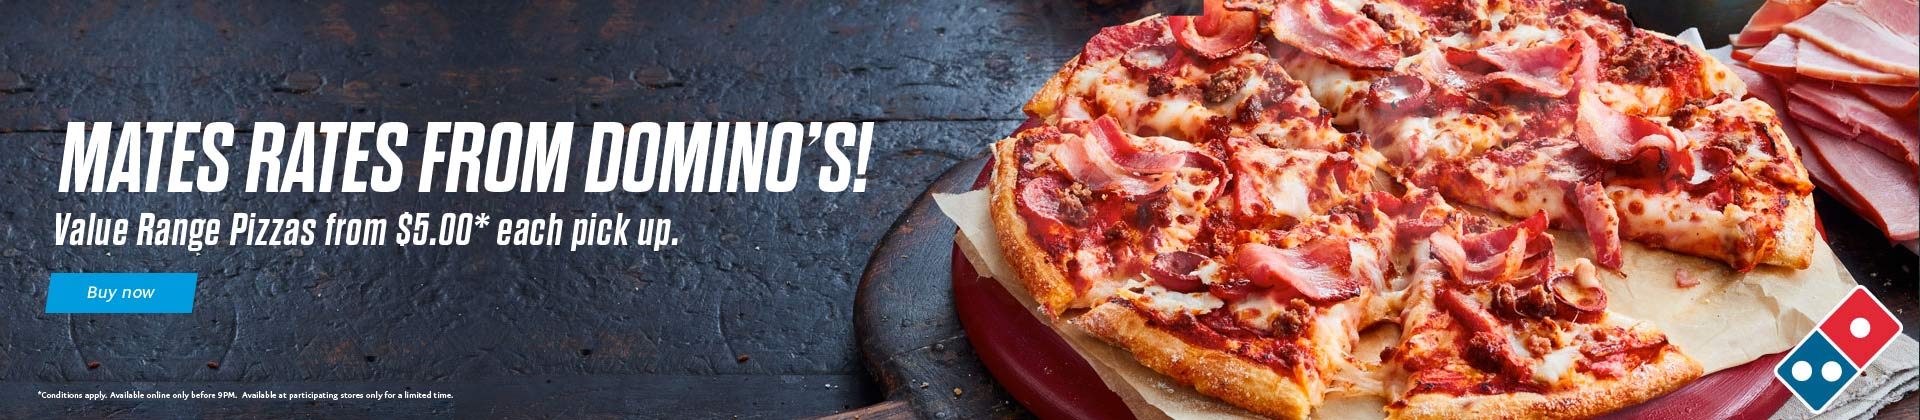 Mates Rates From Domino's! Value Range Pizzas from $5.00* each pick up.